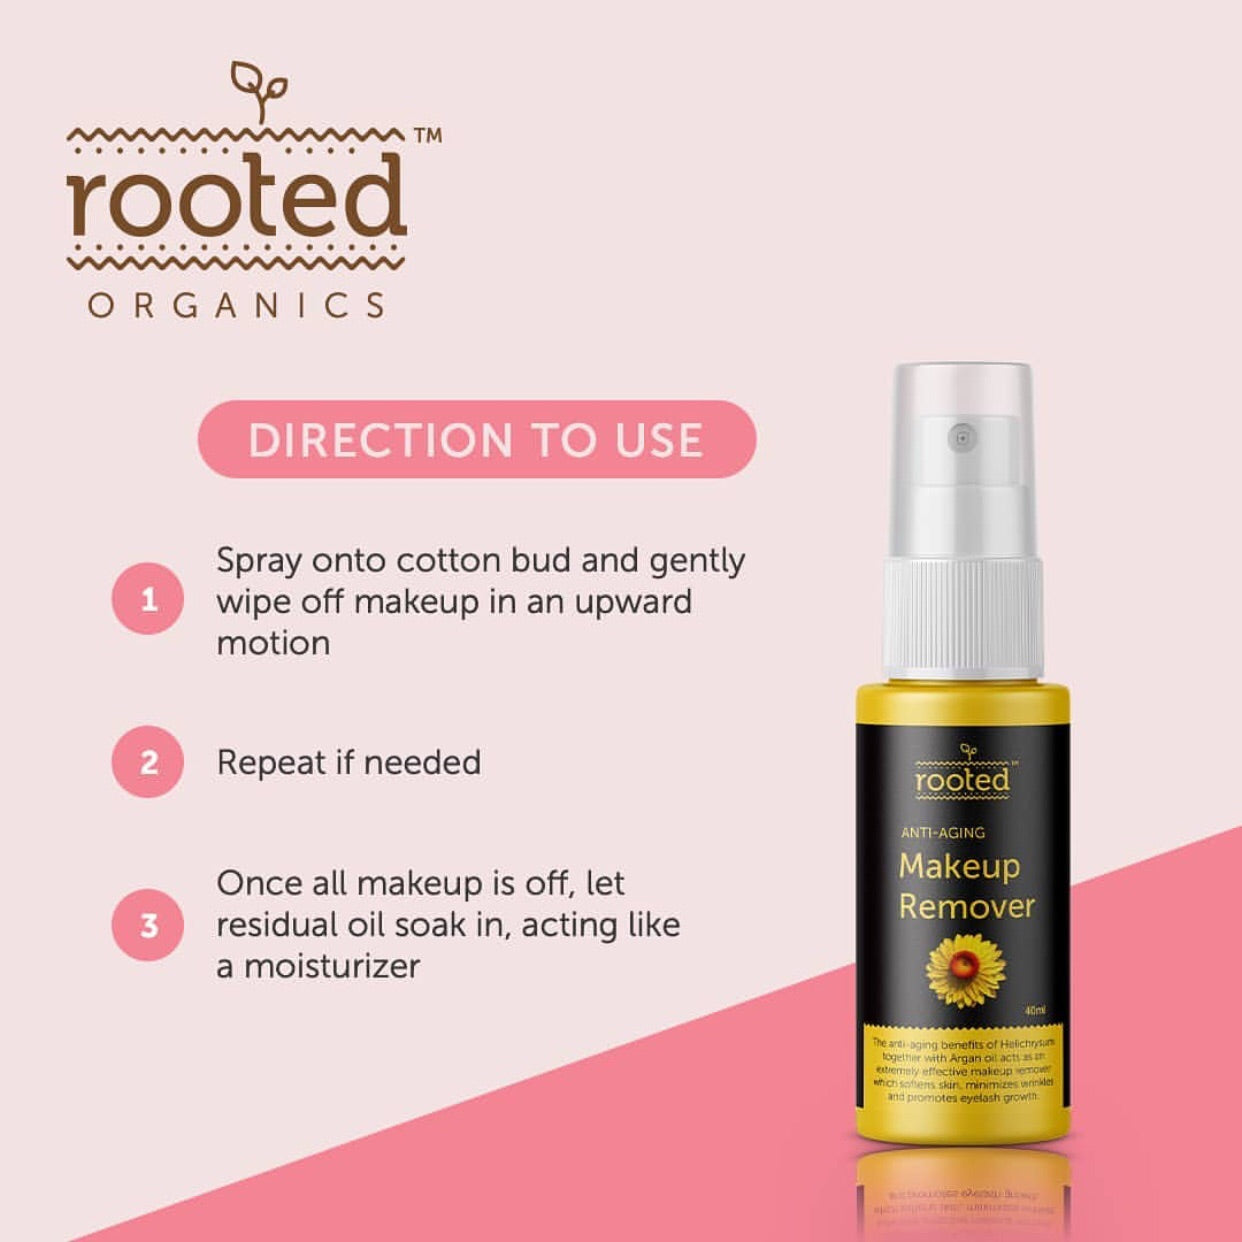 Anti-Aging Eye & Face Makeup Remover - Rooted Organics